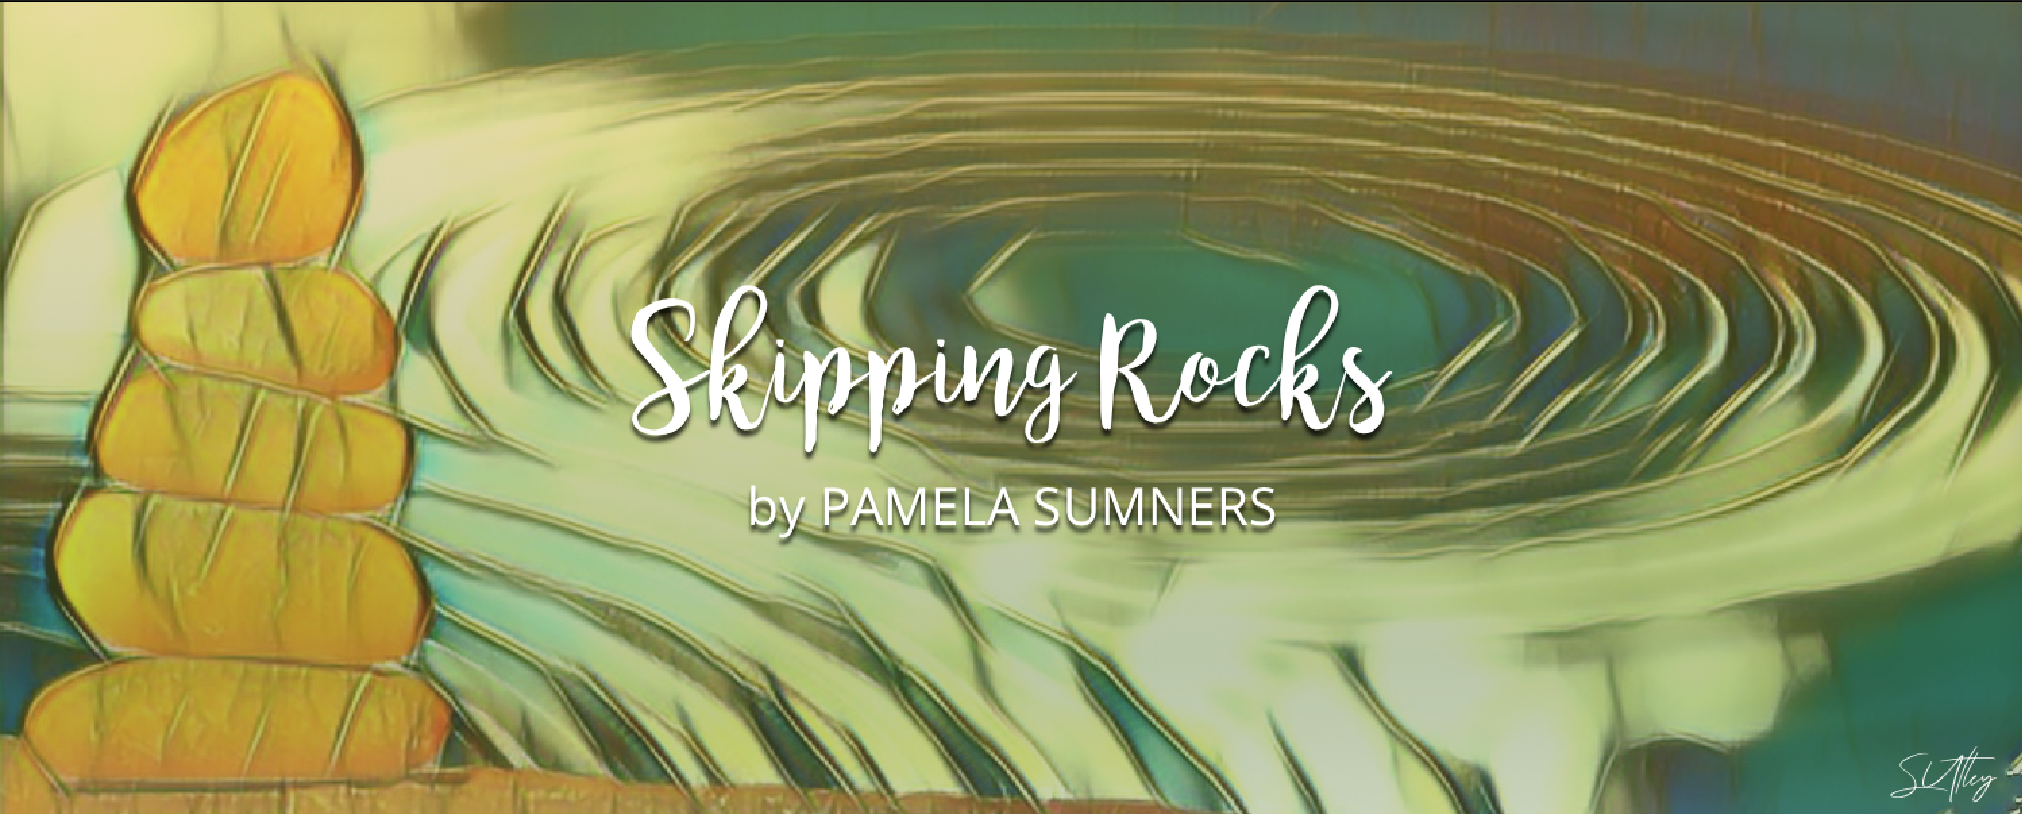 Skipping Rocks by Pamela Sumners